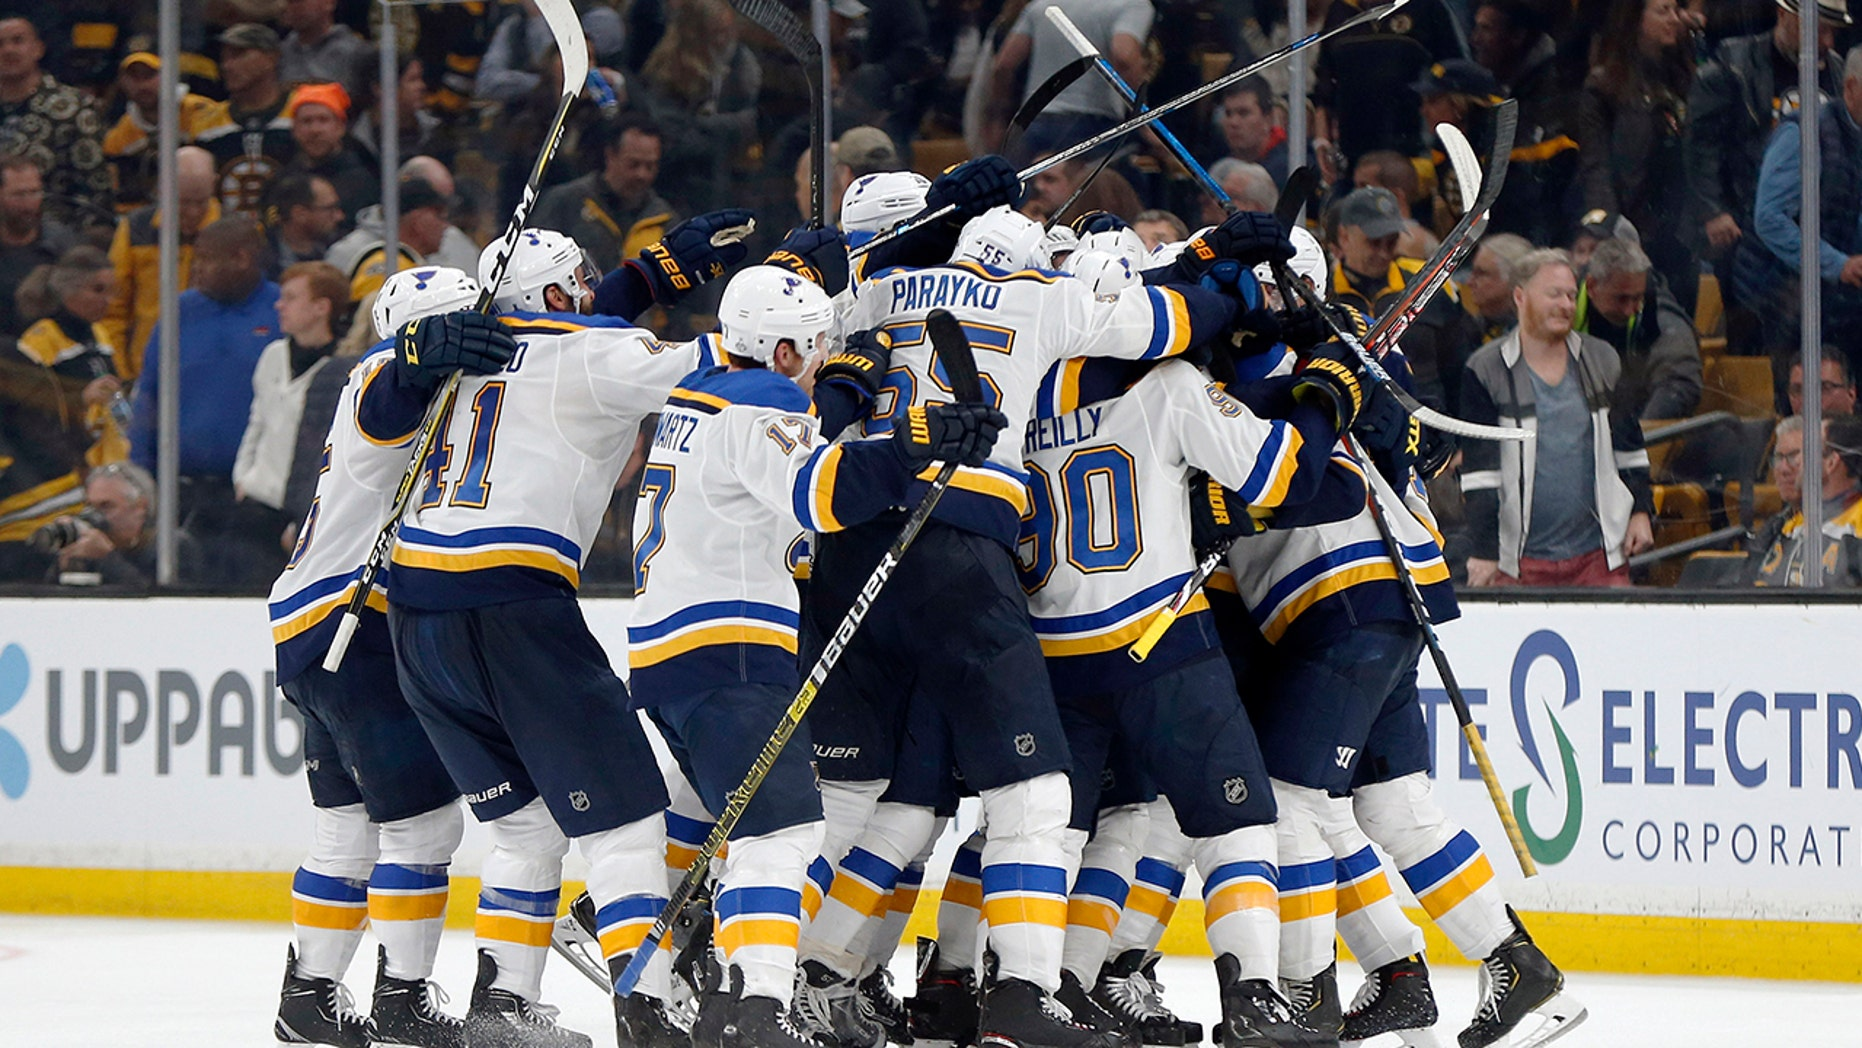 Blues must balance emotion in first home game of series